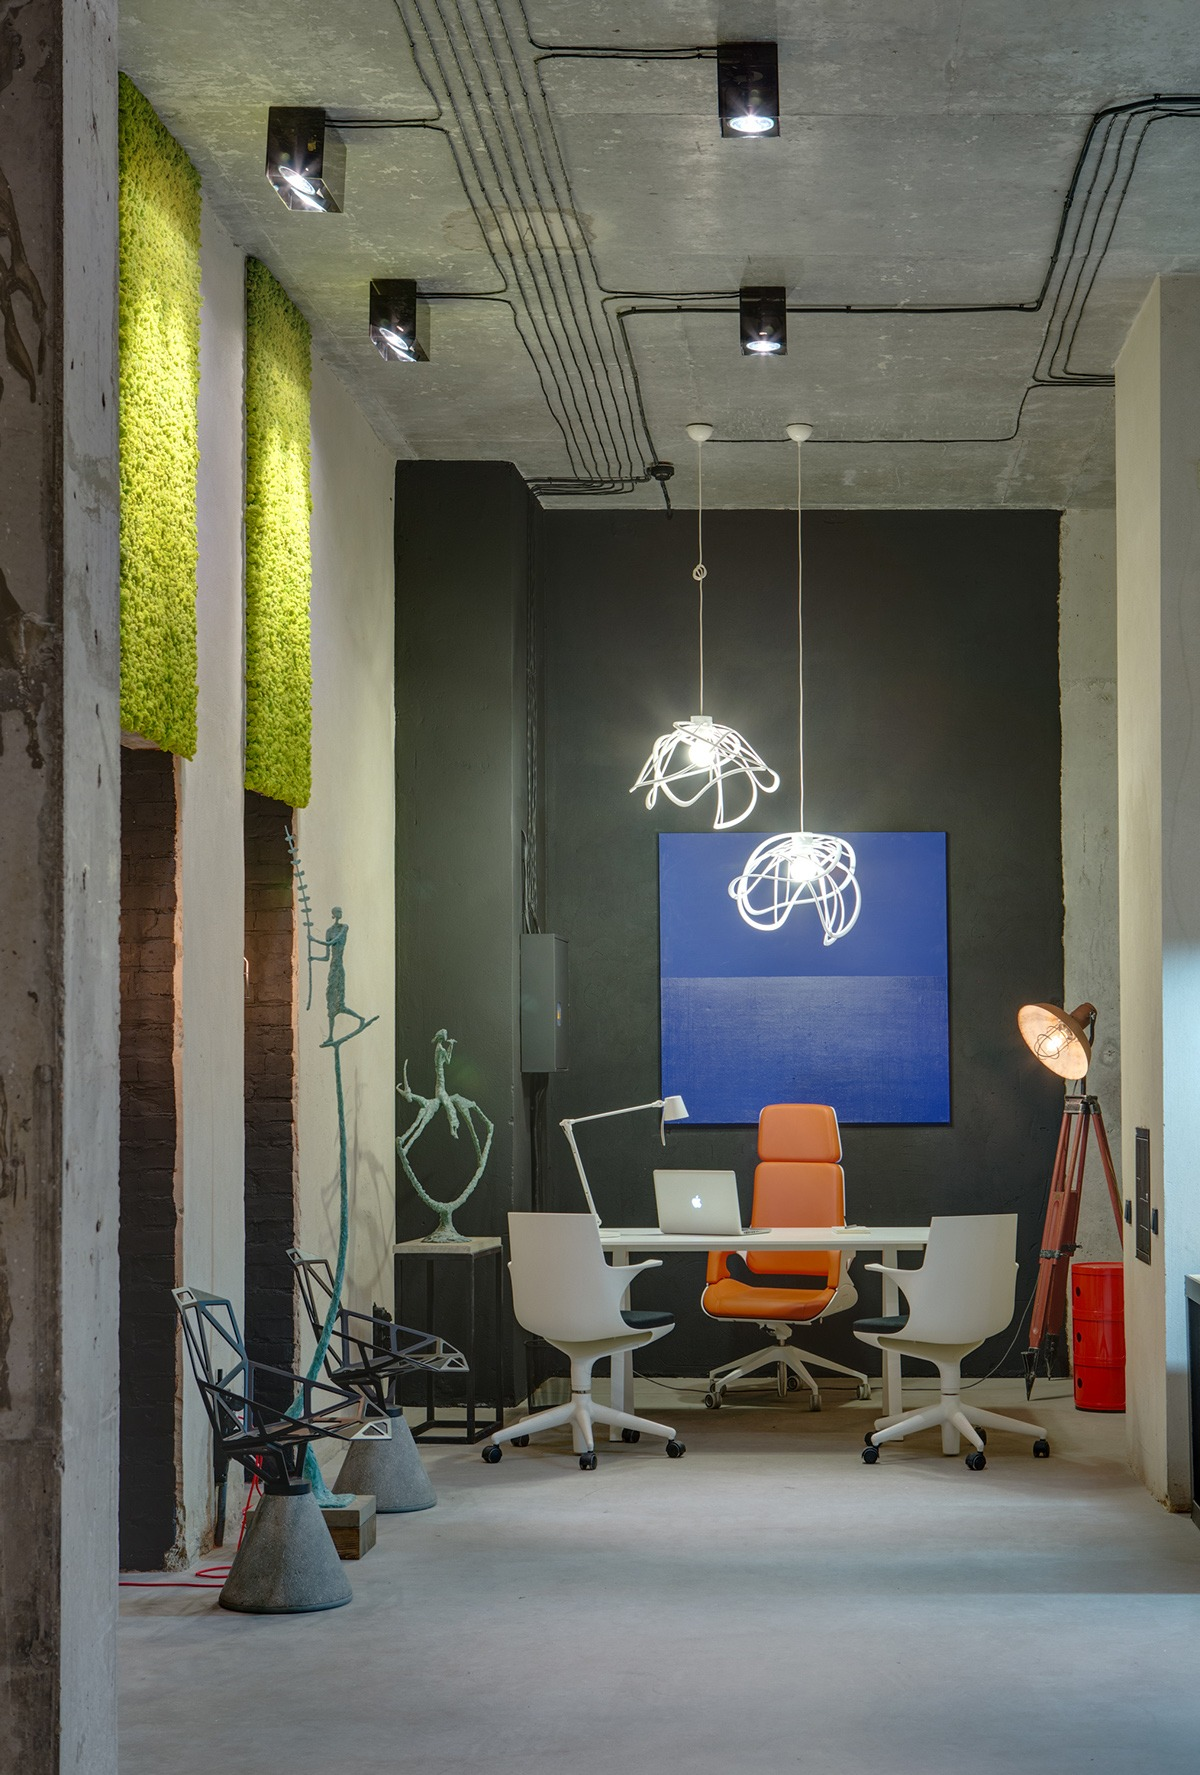 Cool lighting design Office Coolofficelighting Interior Design Ideas Coolofficelighting Interior Design Ideas